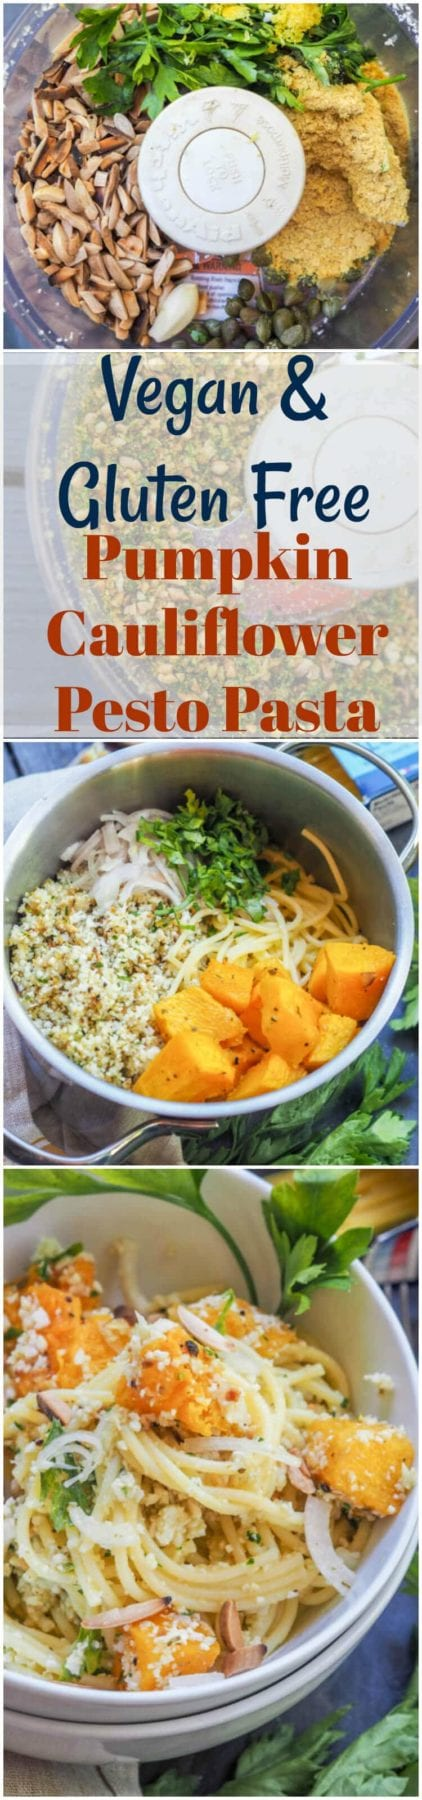 Cauliflower pasta made with roasted pumpkin and a crunchy nutty raw cauliflower pesto is bound to be your new favorite meatless vegan dinner. A hearty and healthy gluten free meal. #dinner #vegan #pasta #healthy #pumpkin